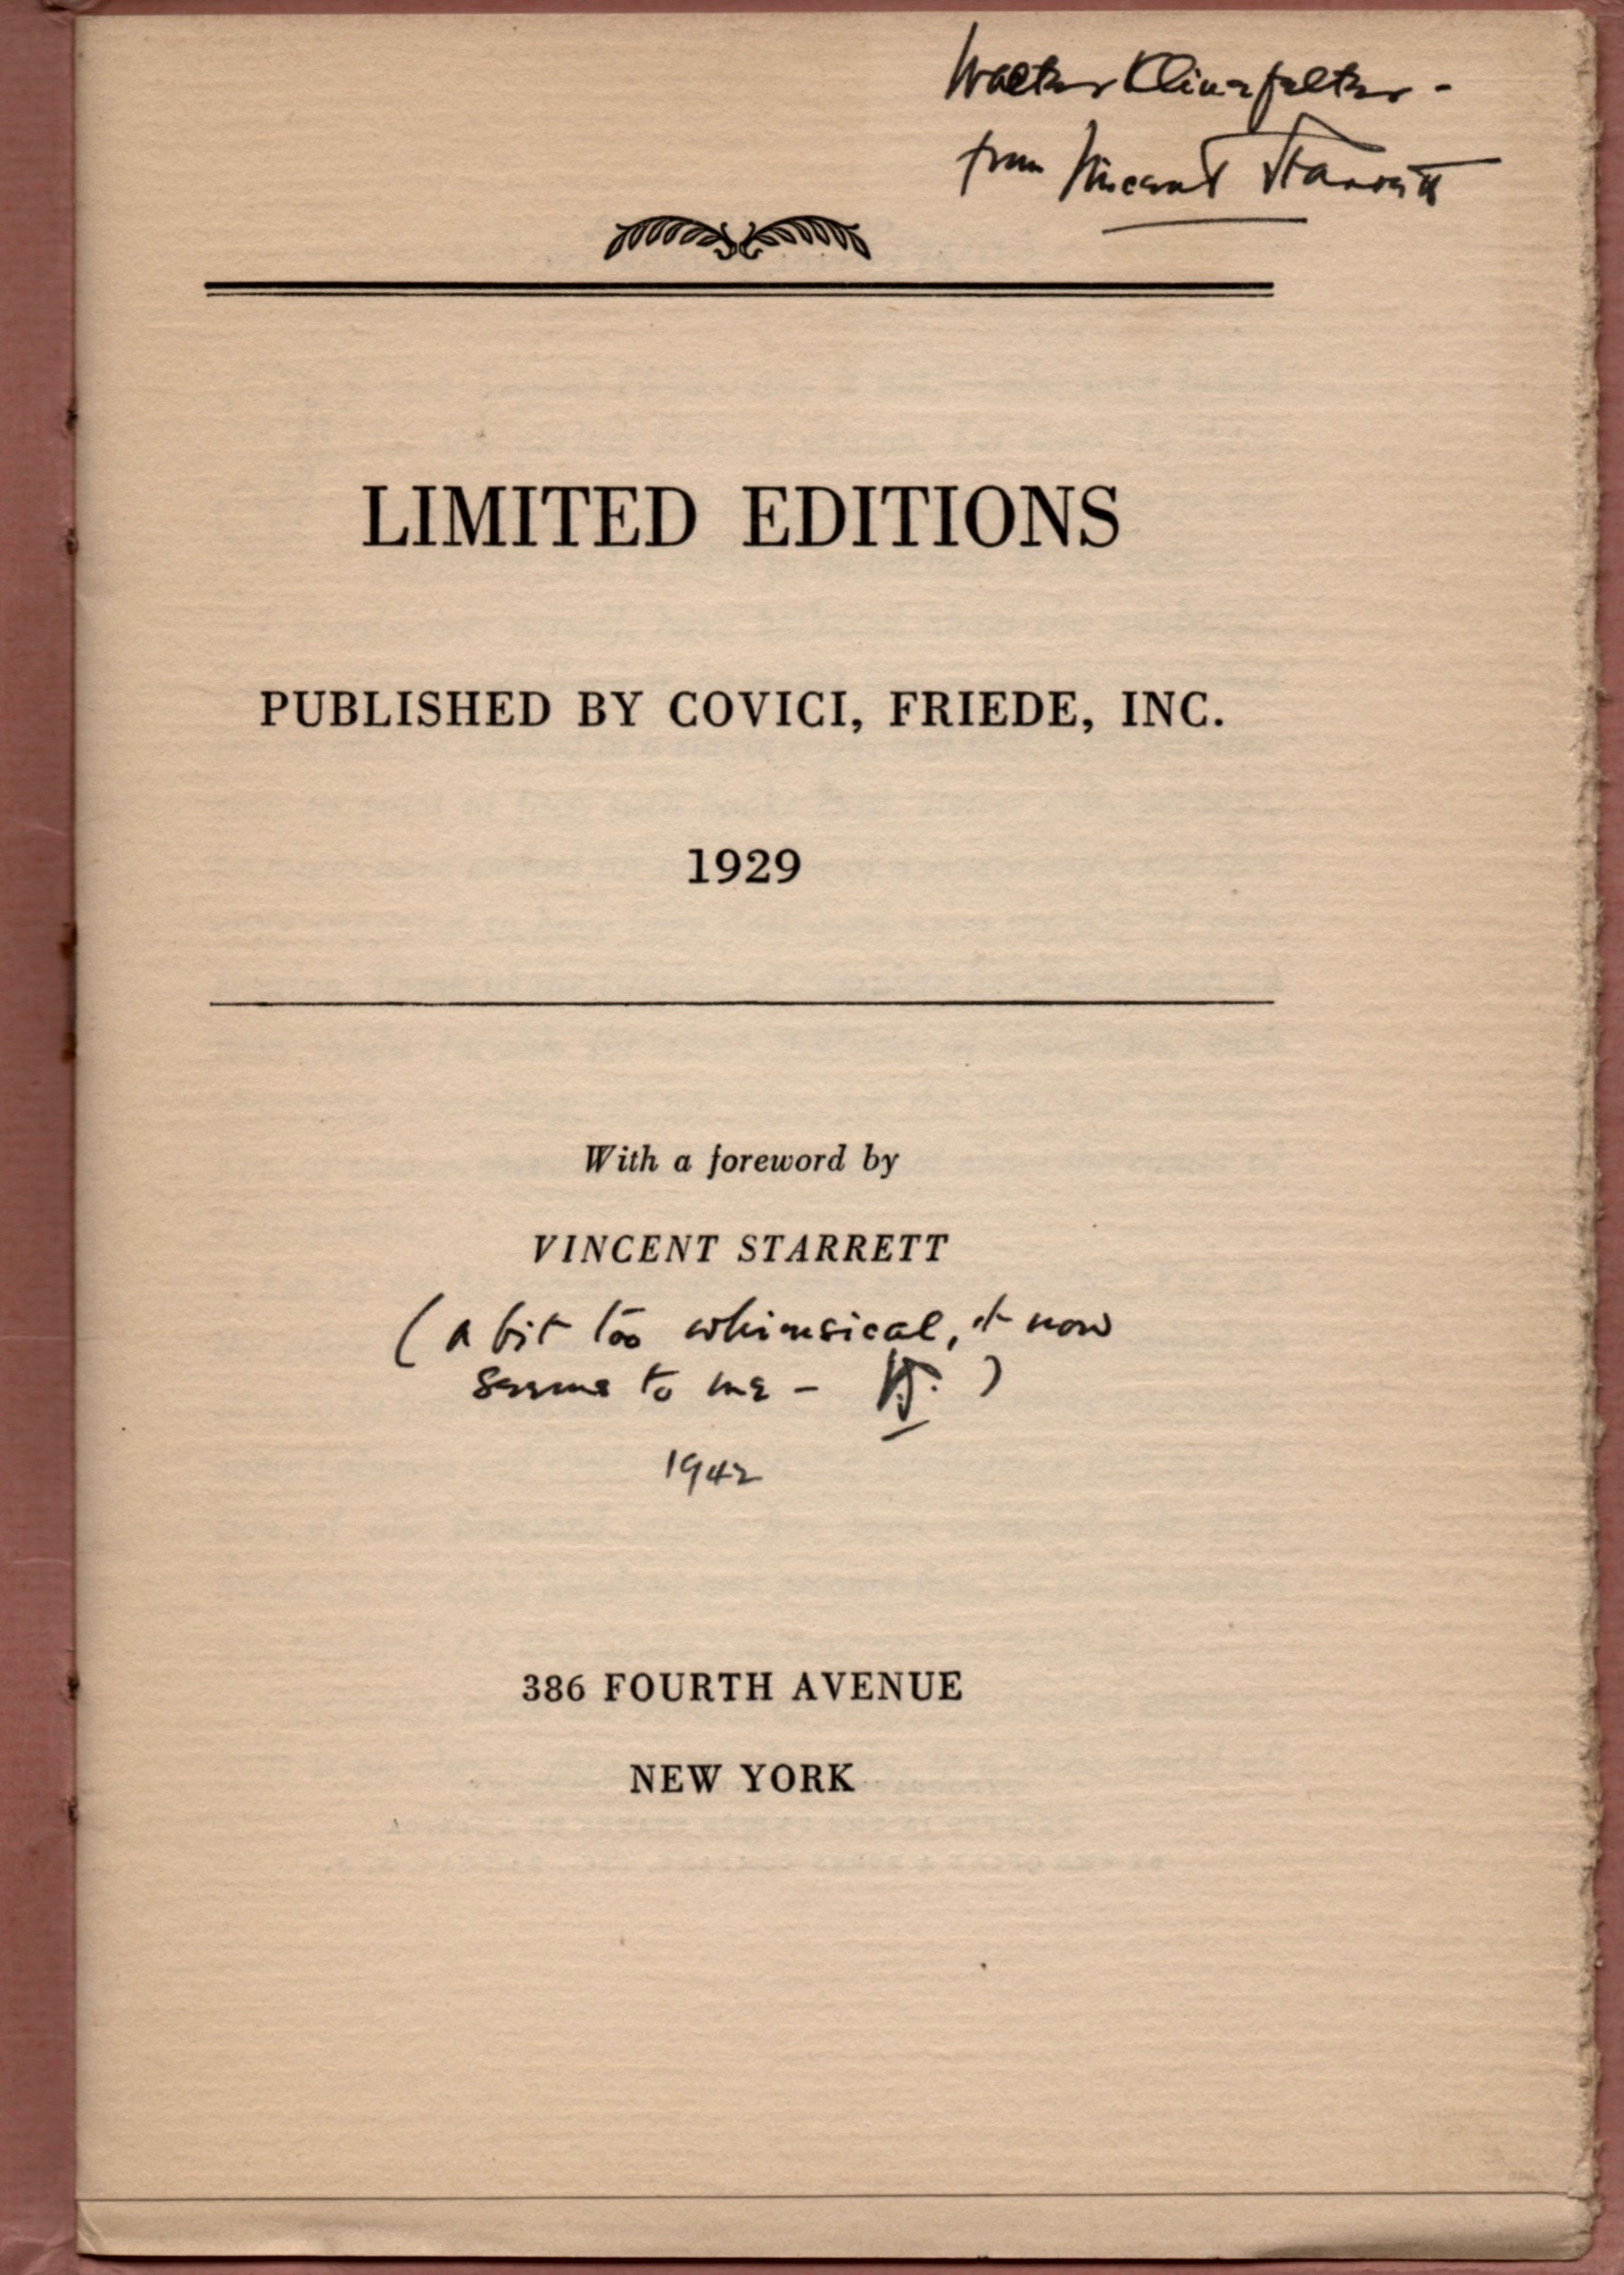 """Starrett has inscribed this to Walter Klinefelter and then added """"A bit too whimsical, it now seems to me — VS/1942"""""""